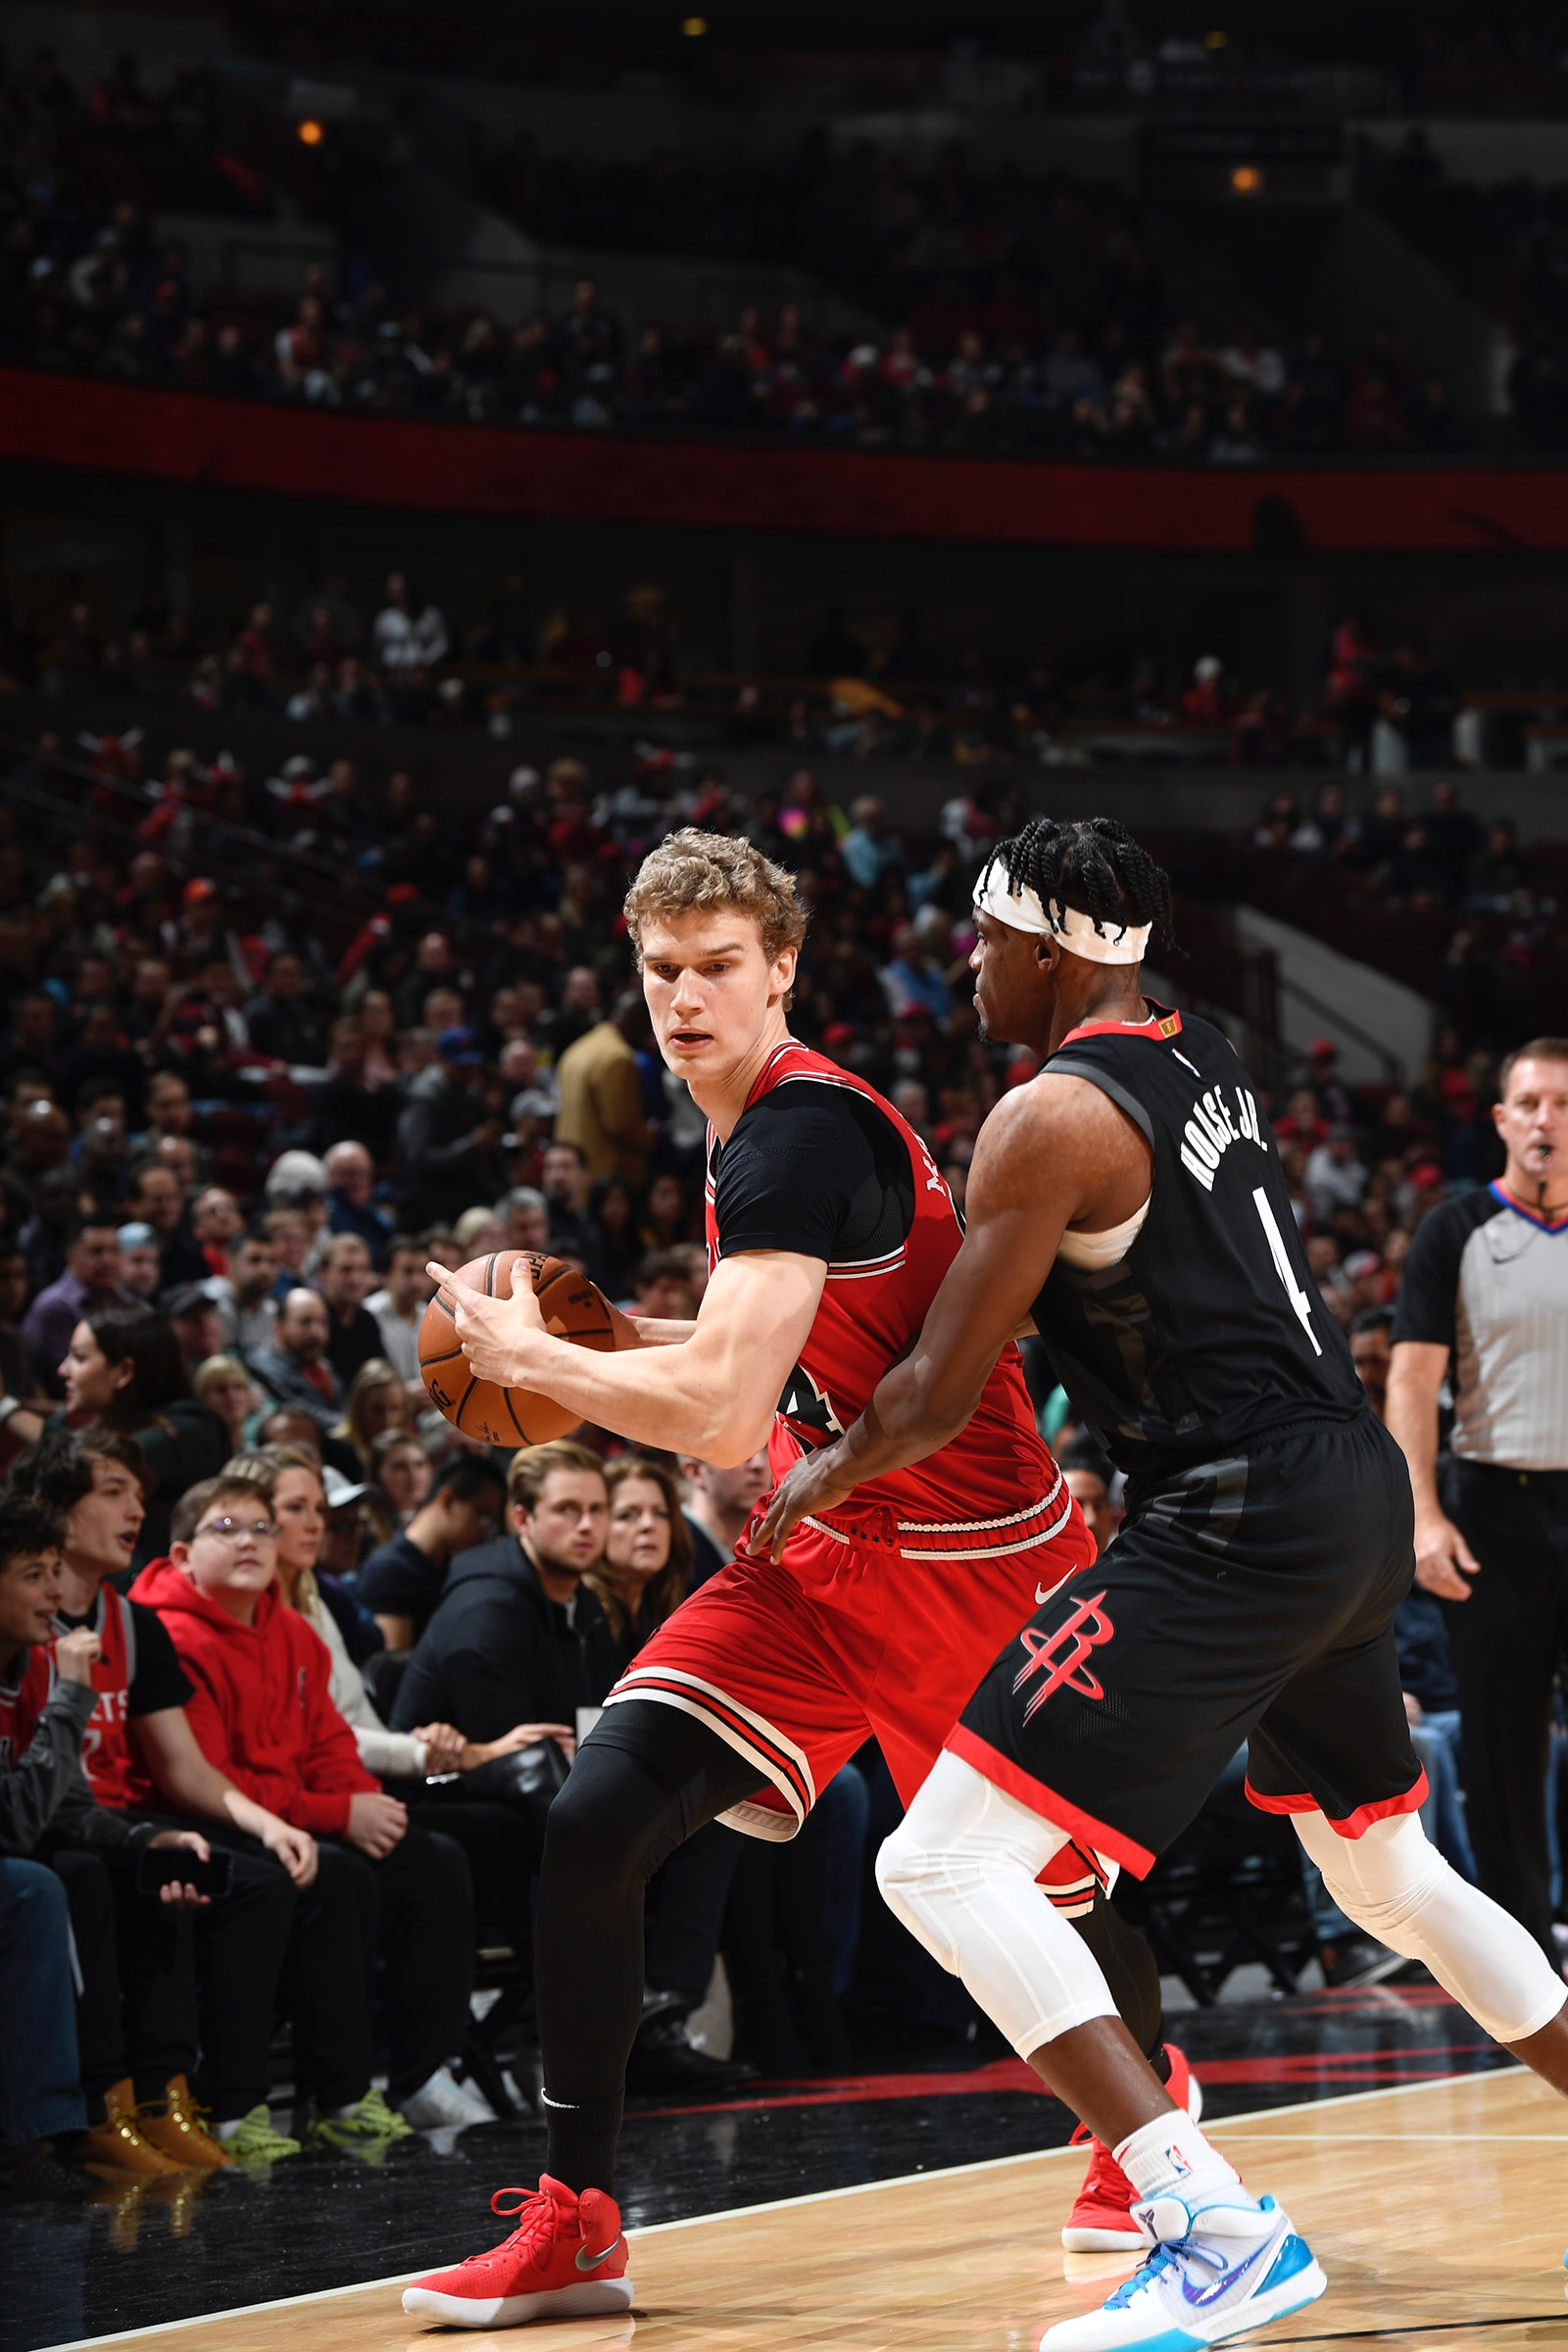 Lauri about to drive the ball